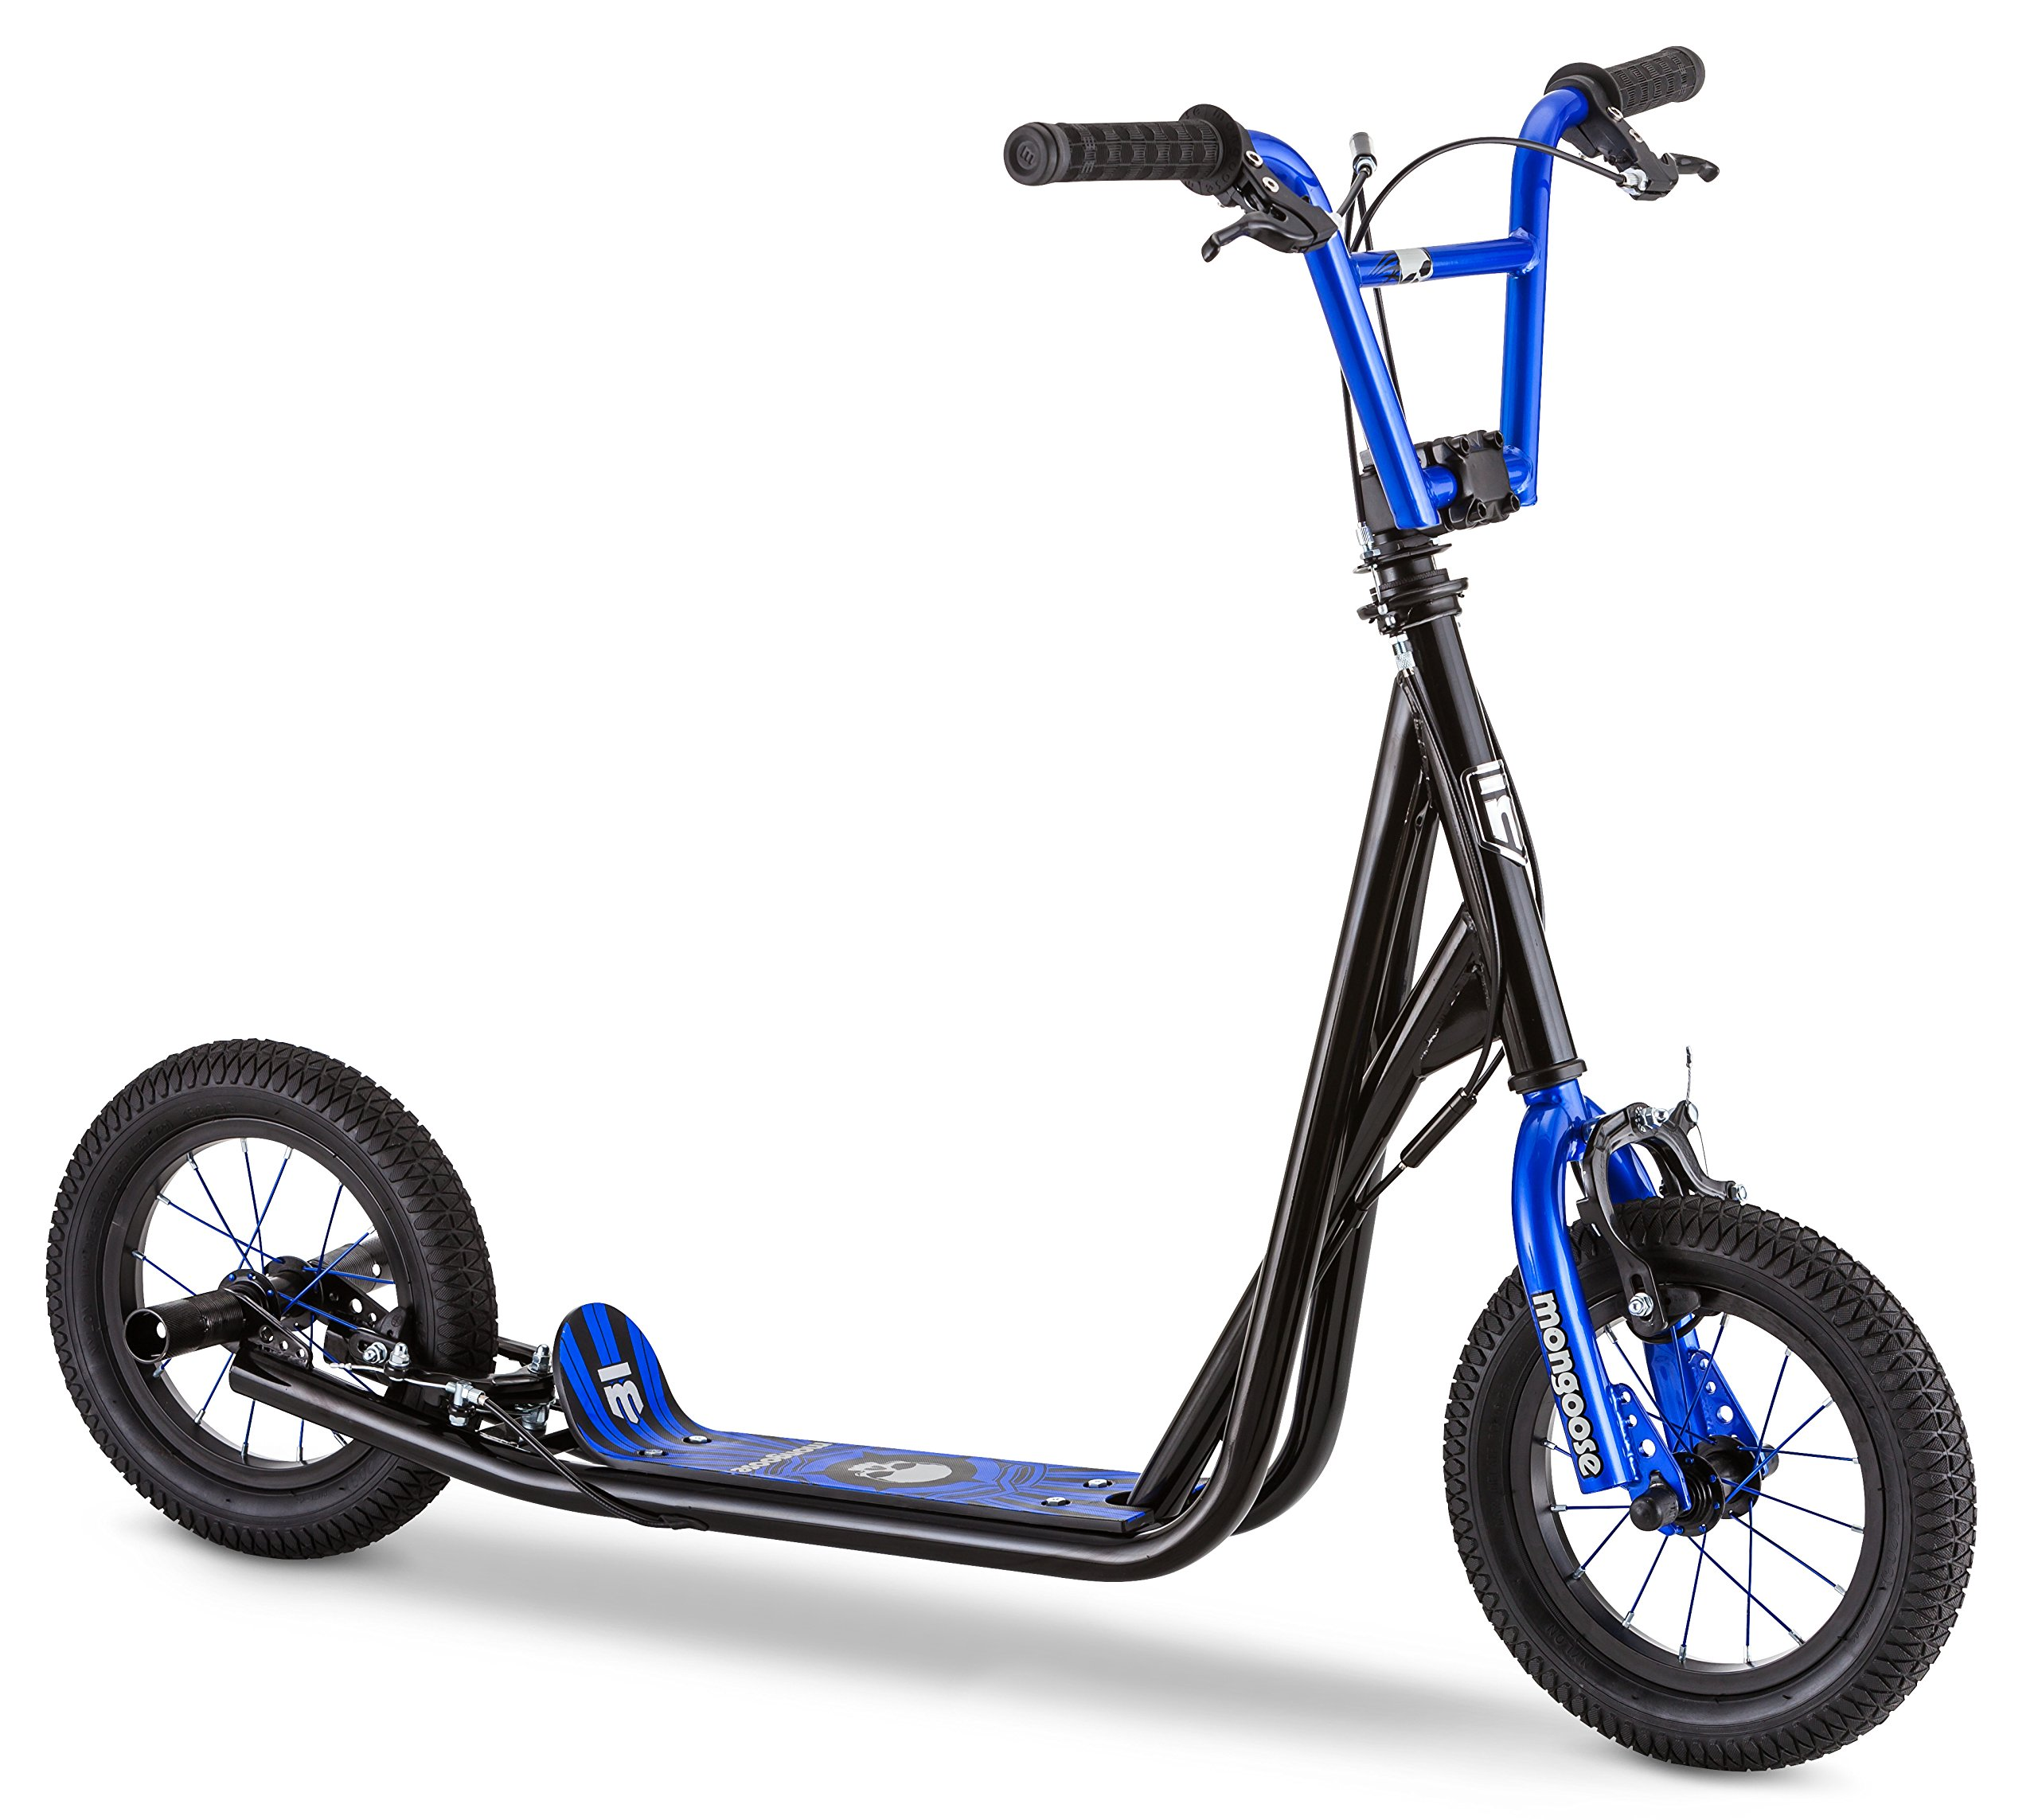 Mongoose Expo Scooter, Featuring Front and Rear Caliper Brakes and Rear Axle Pegs with 12-Inch Inflatable Wheels, Black/Blue by Mongoose